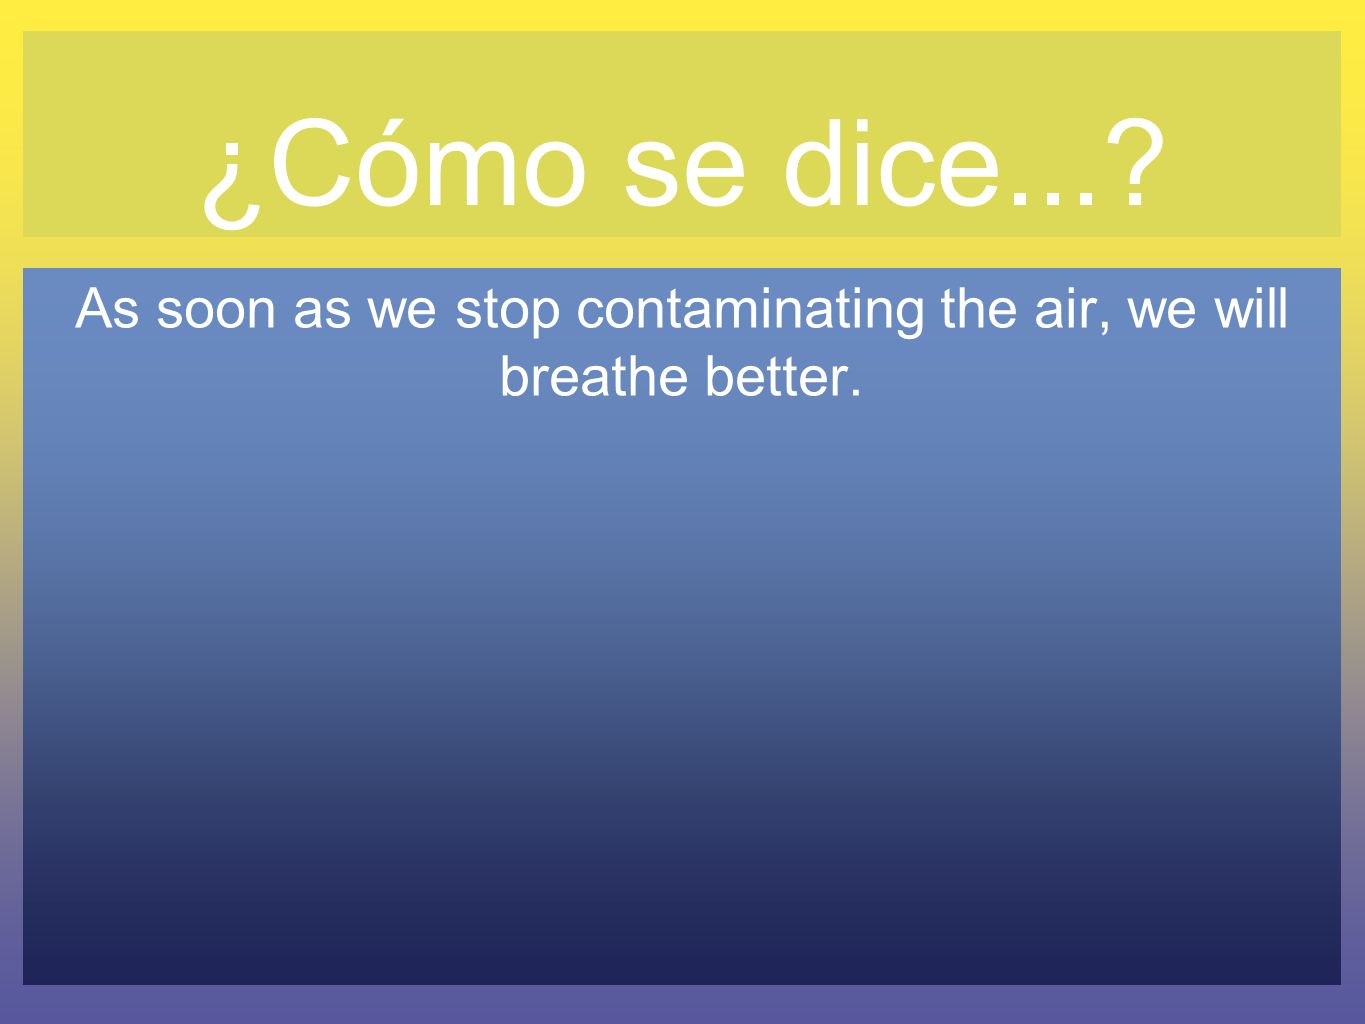 ¿Cómo se dice....As soon as we stop contaminating the air, we will breathe better.